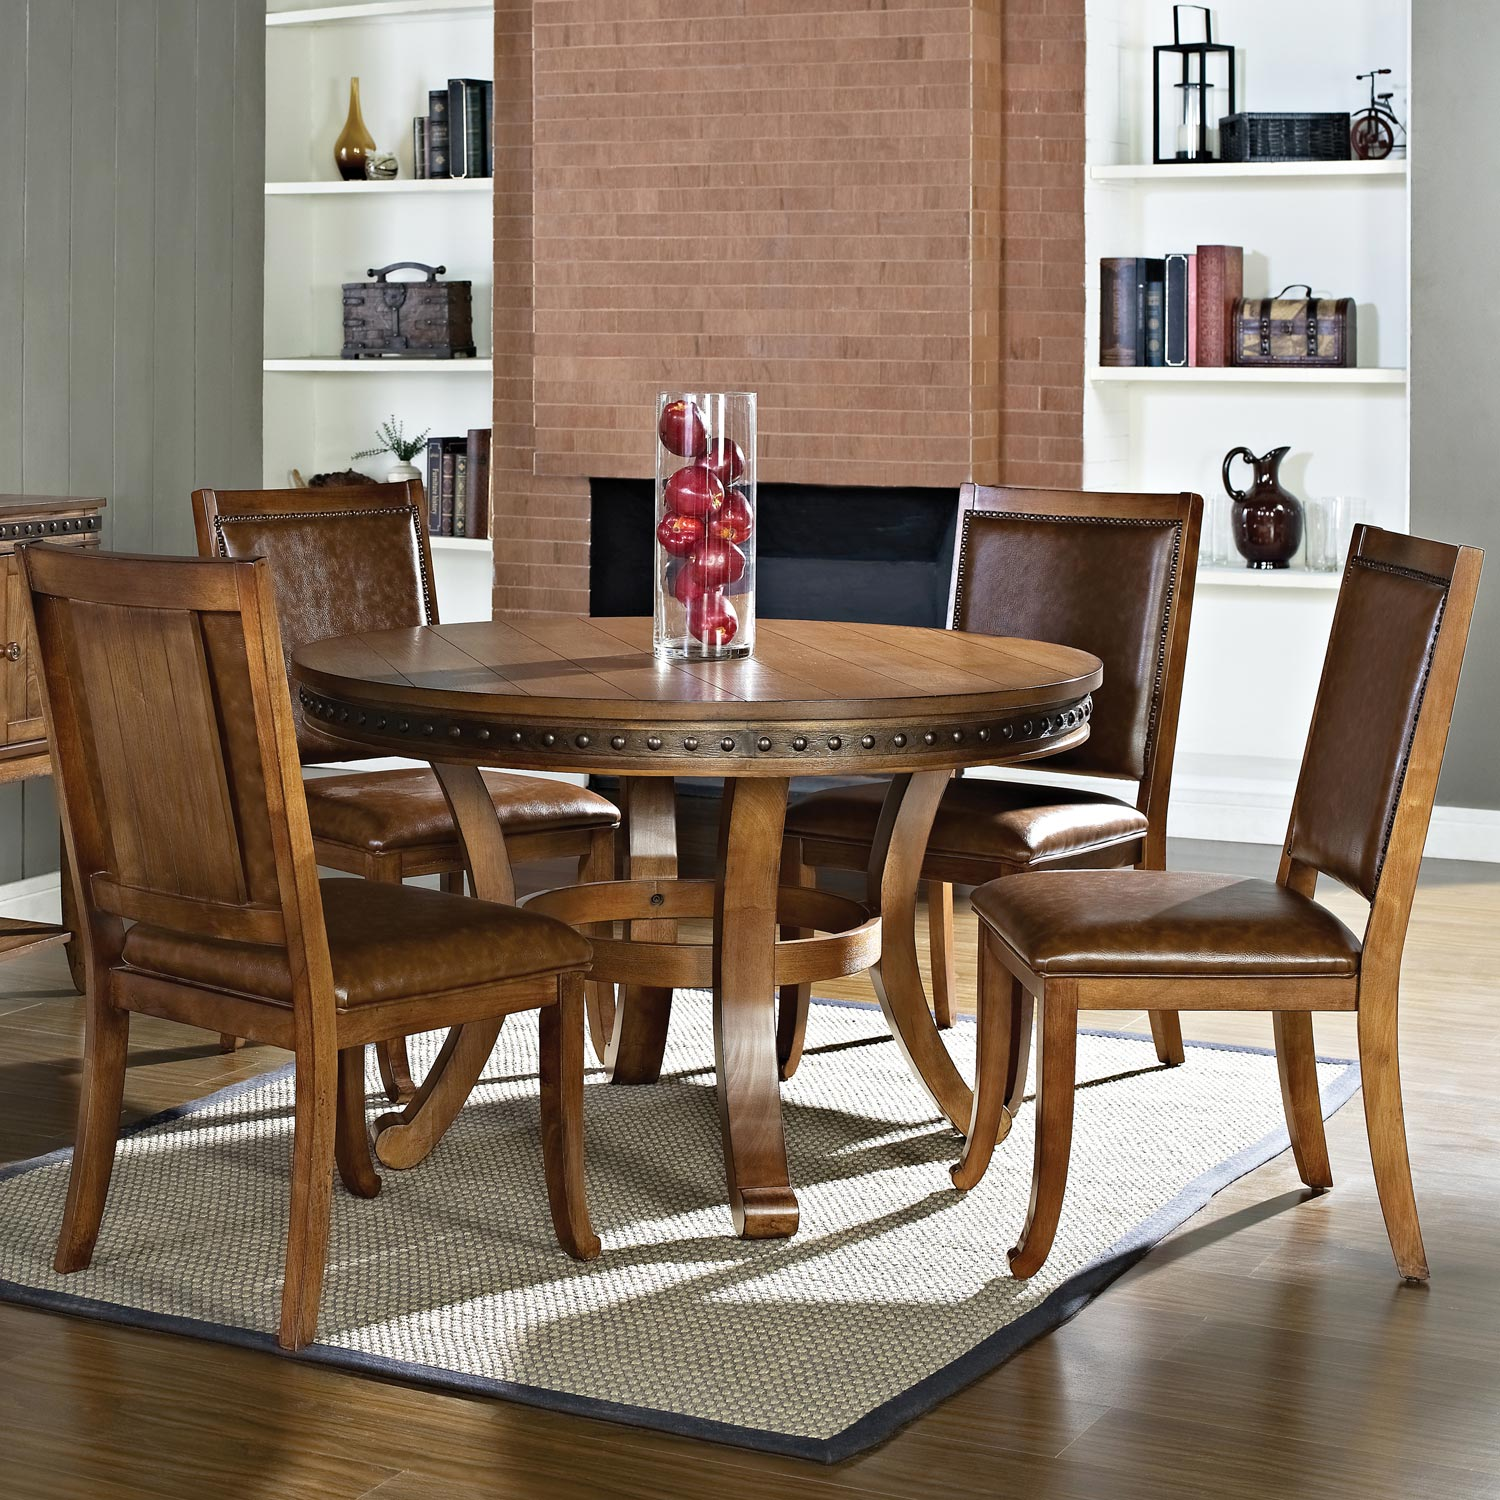 Ashbrook 5 Piece Round Dining Set - Nail Heads, Brown, Oak Finish - SSC-AB480-5PC